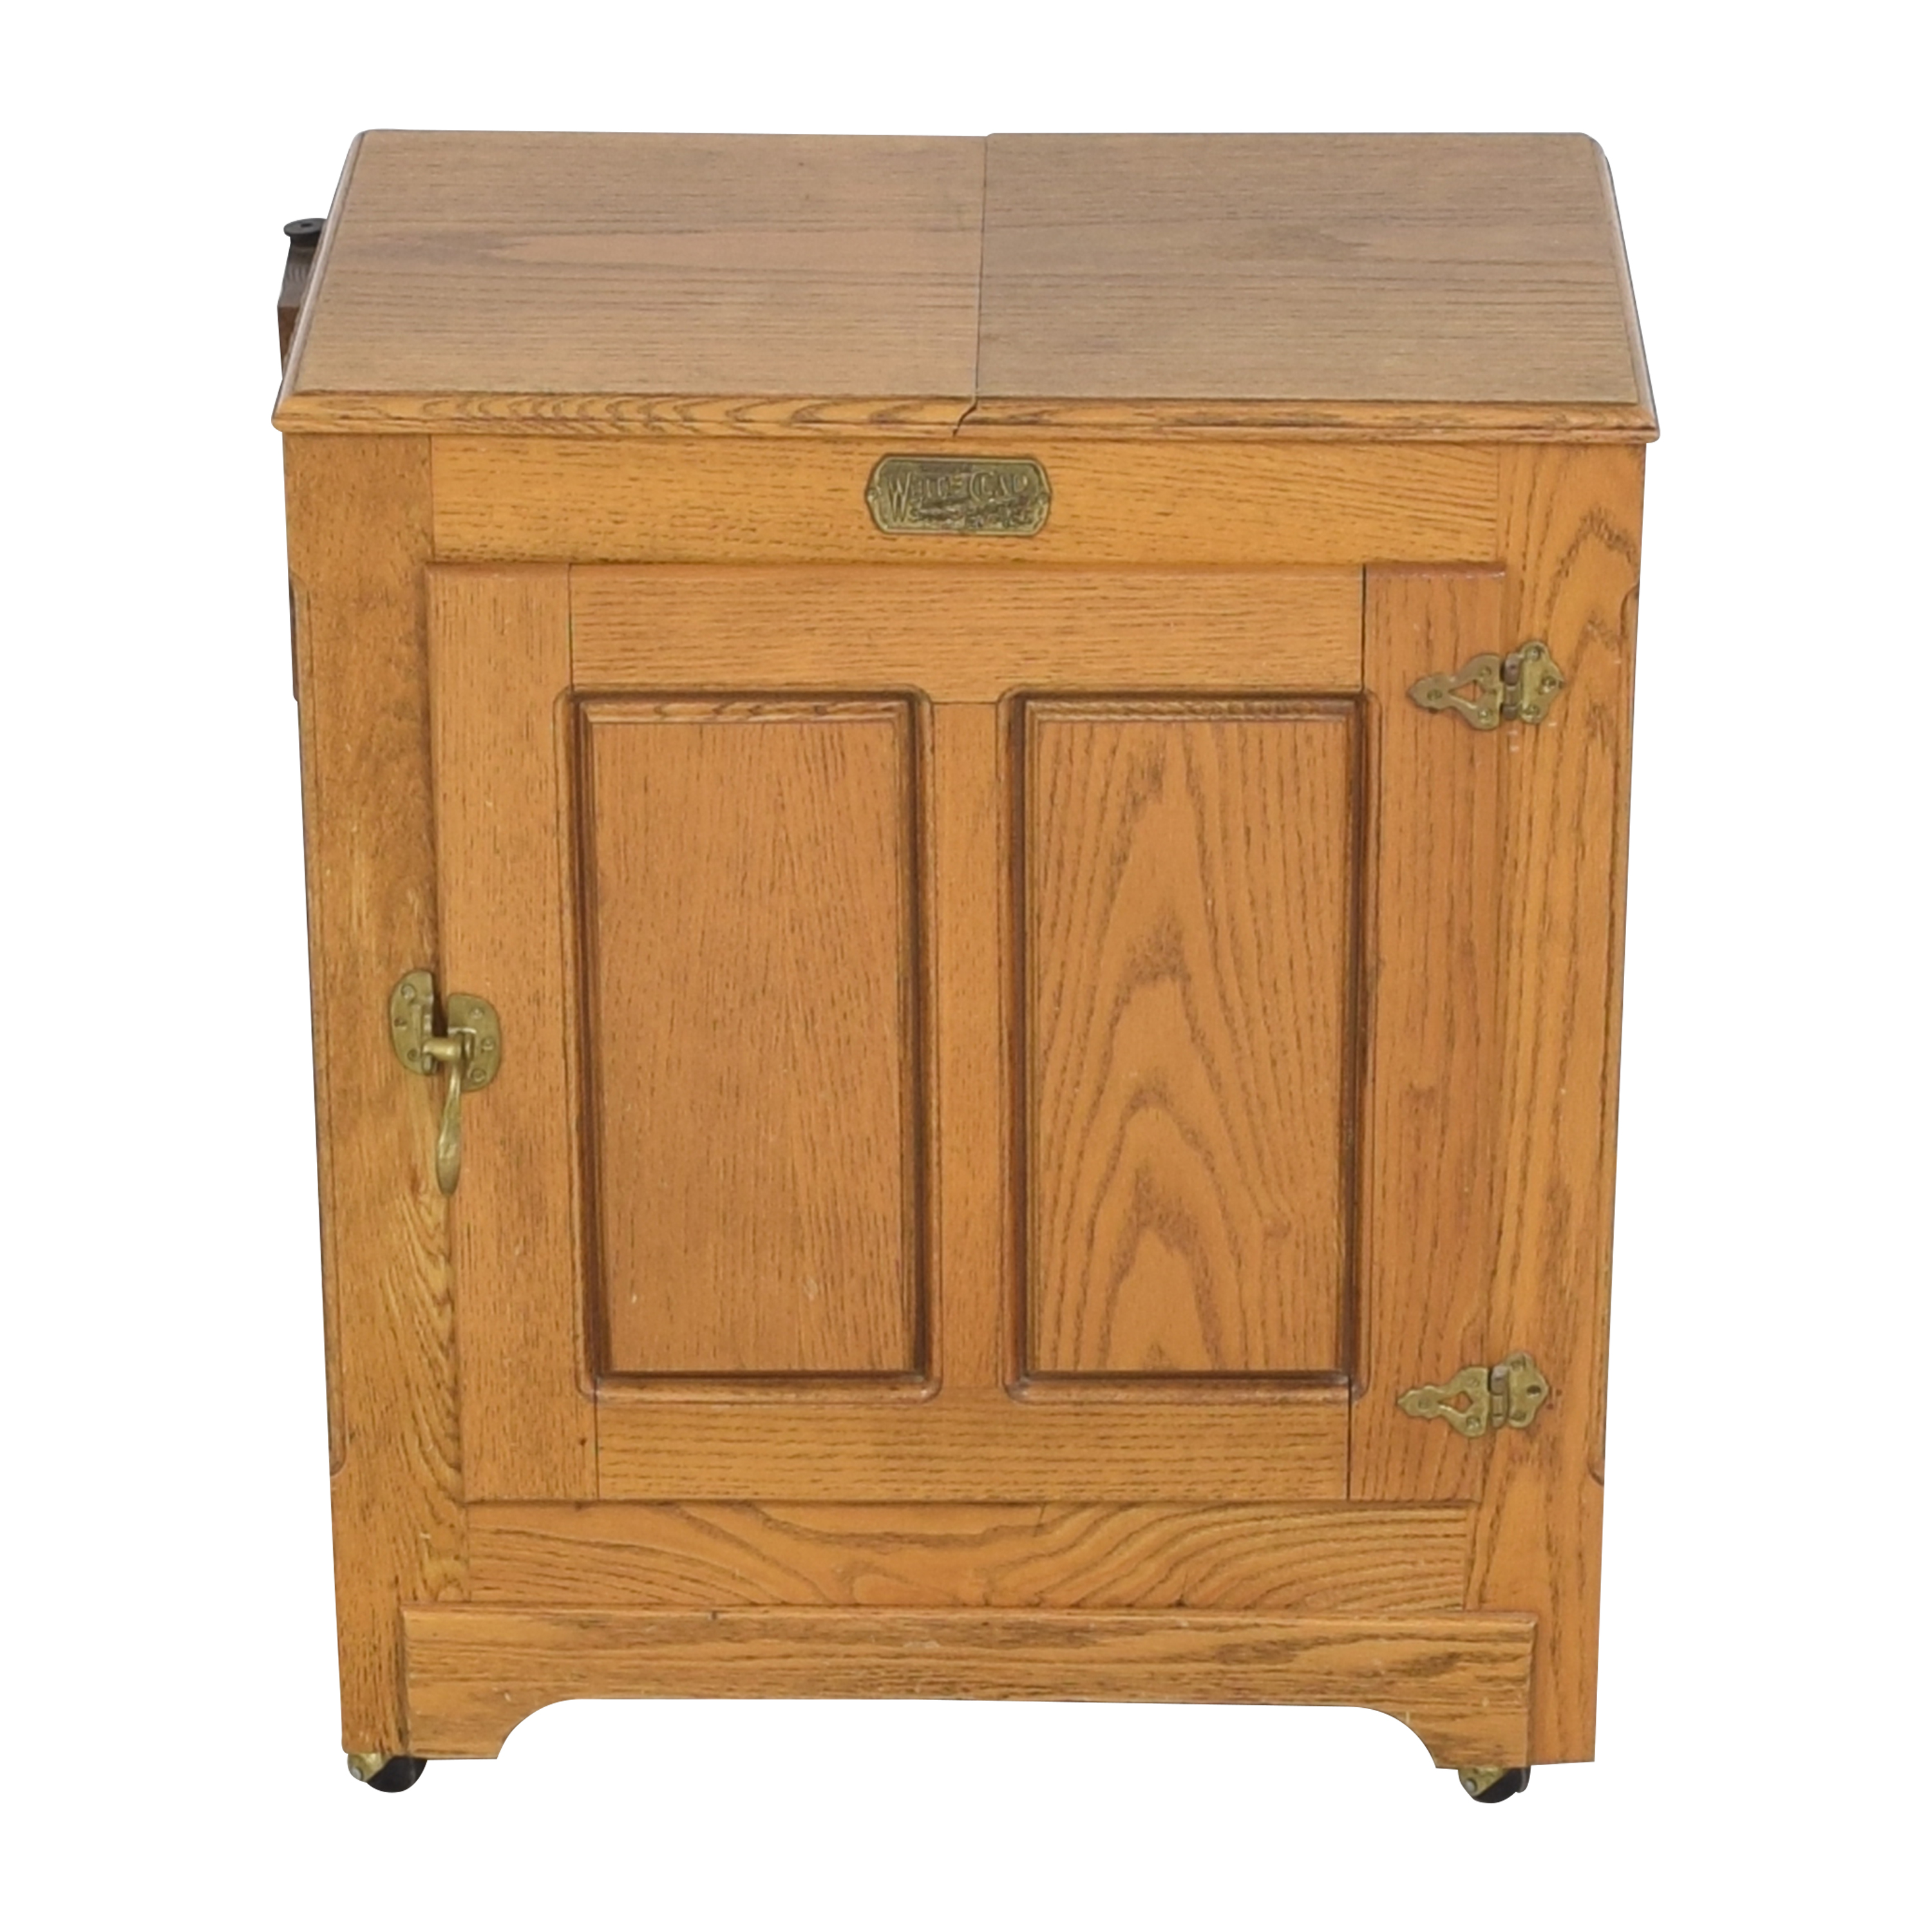 shop Simmons Hardware Simmons Hardware White Clad Ice Box Wine Cabinet on Casters online